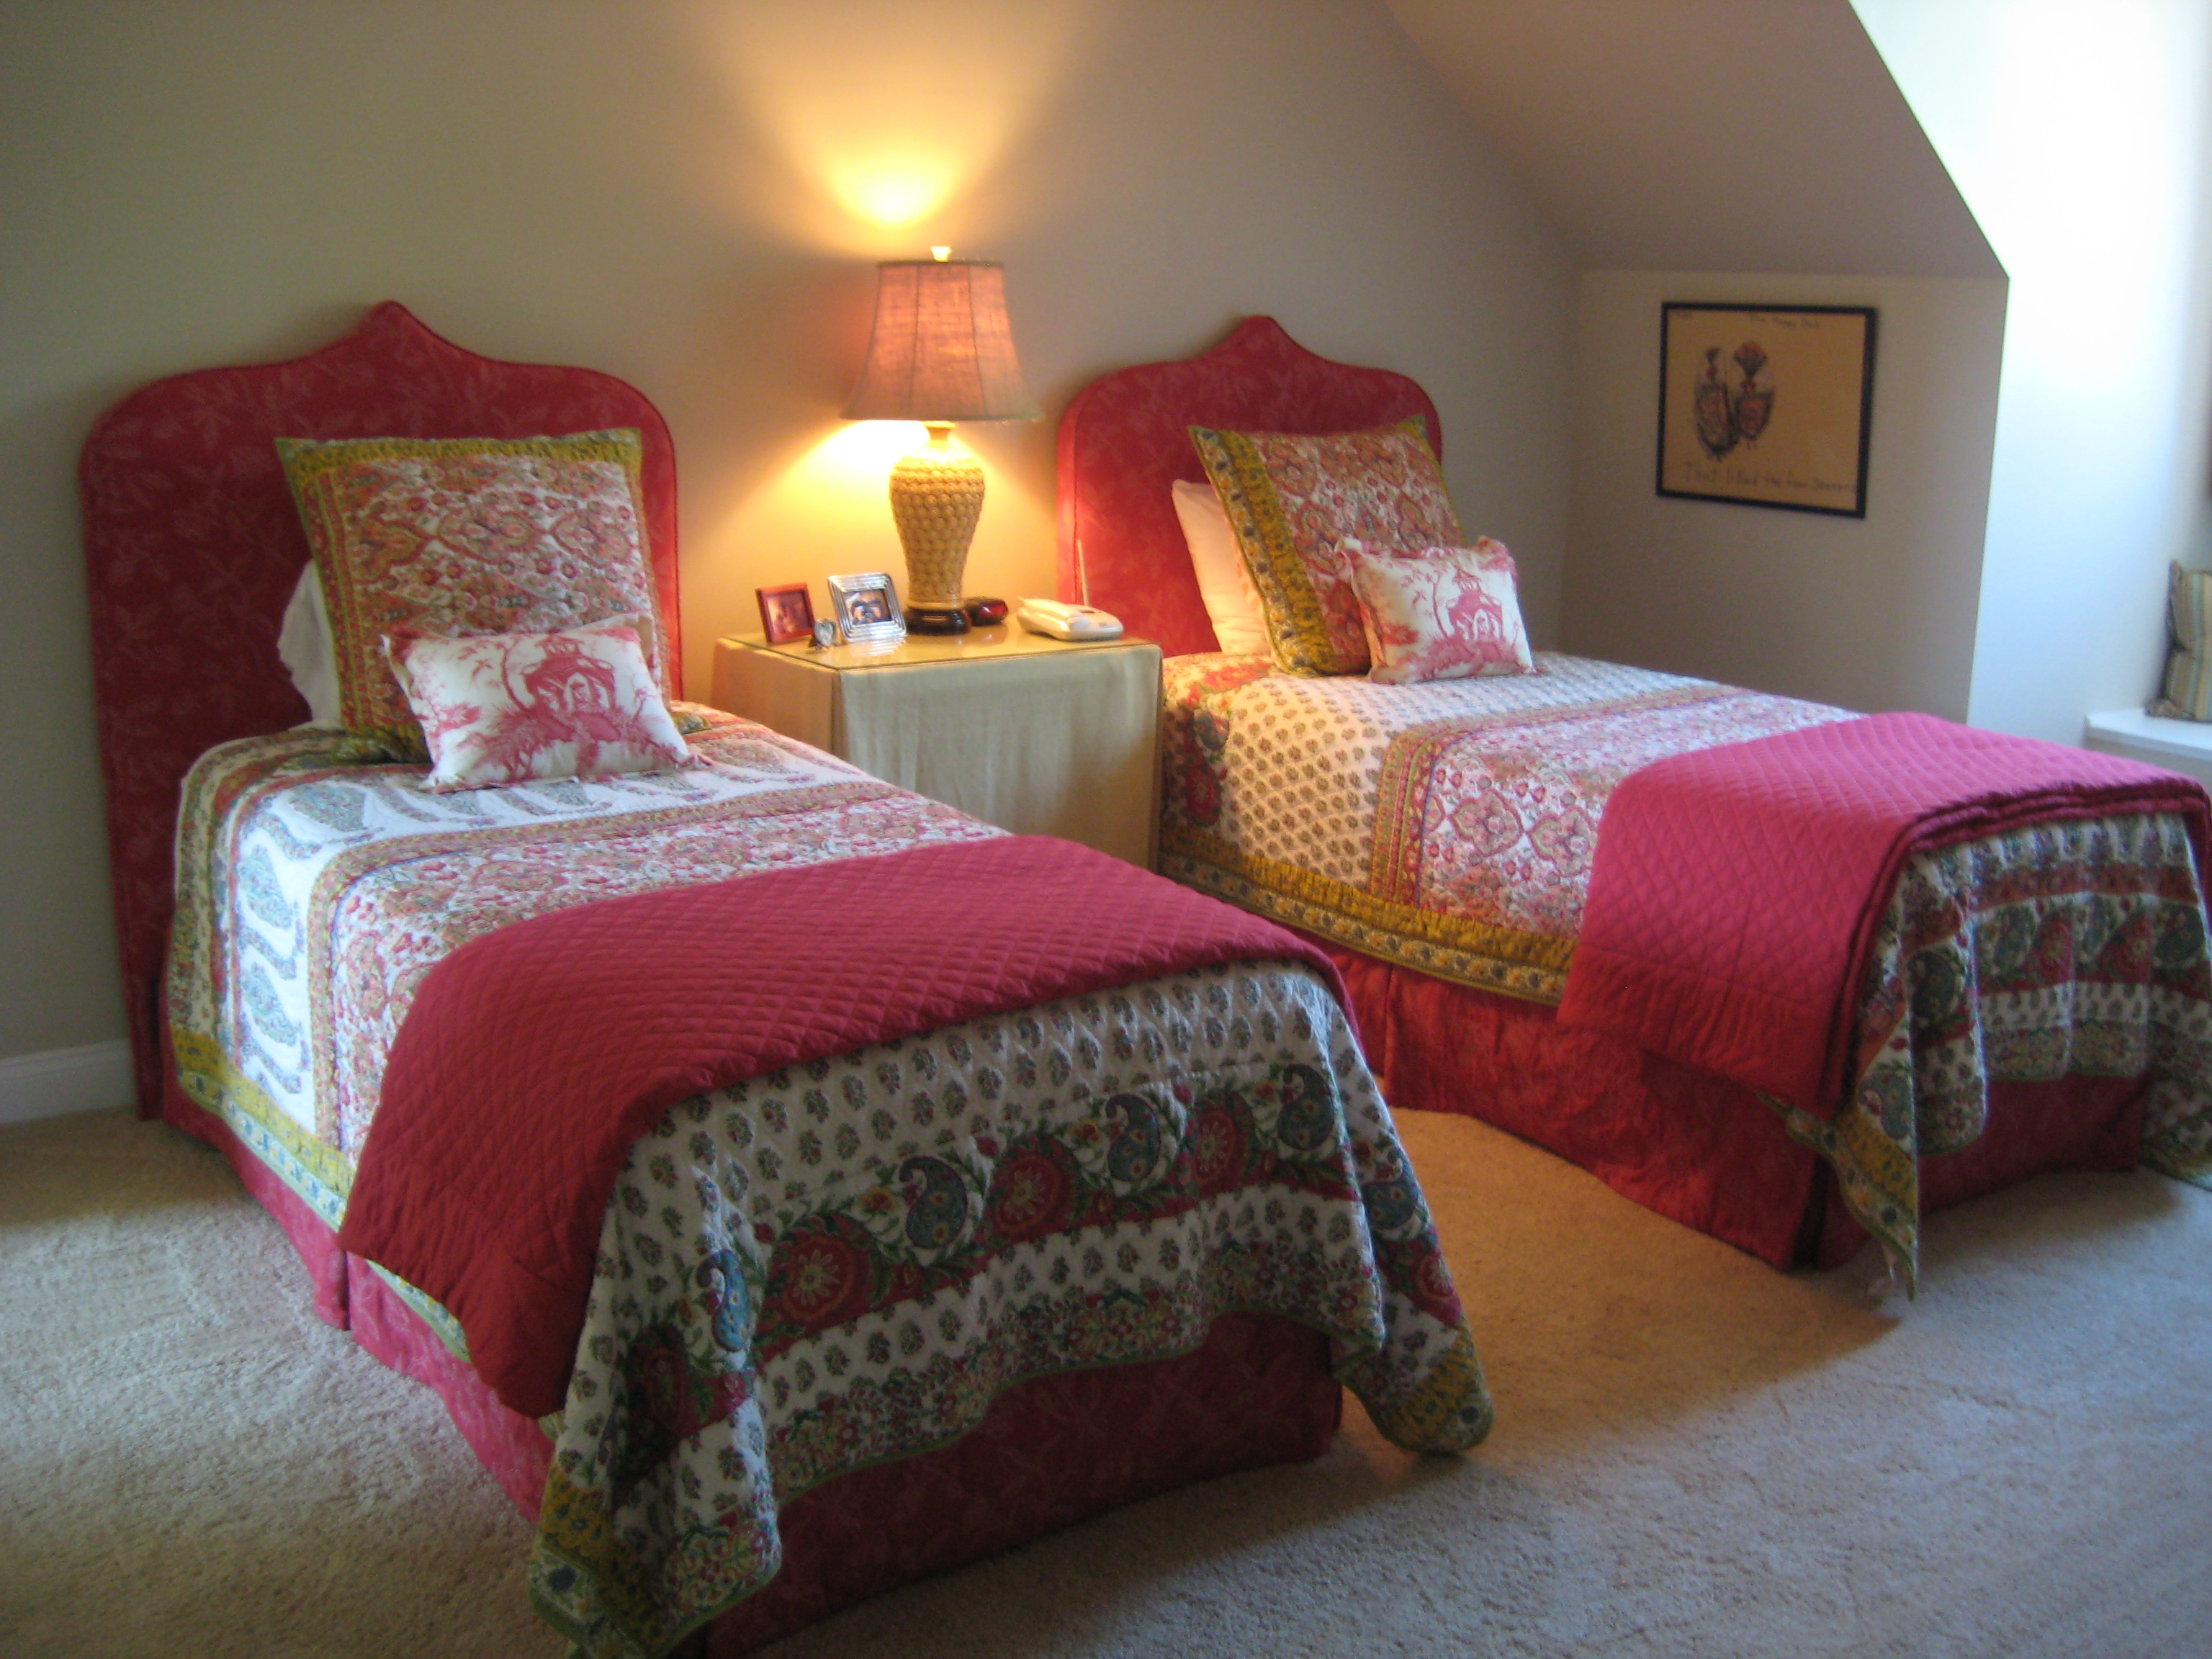 Two Beds that will work with the Zipit Bedding